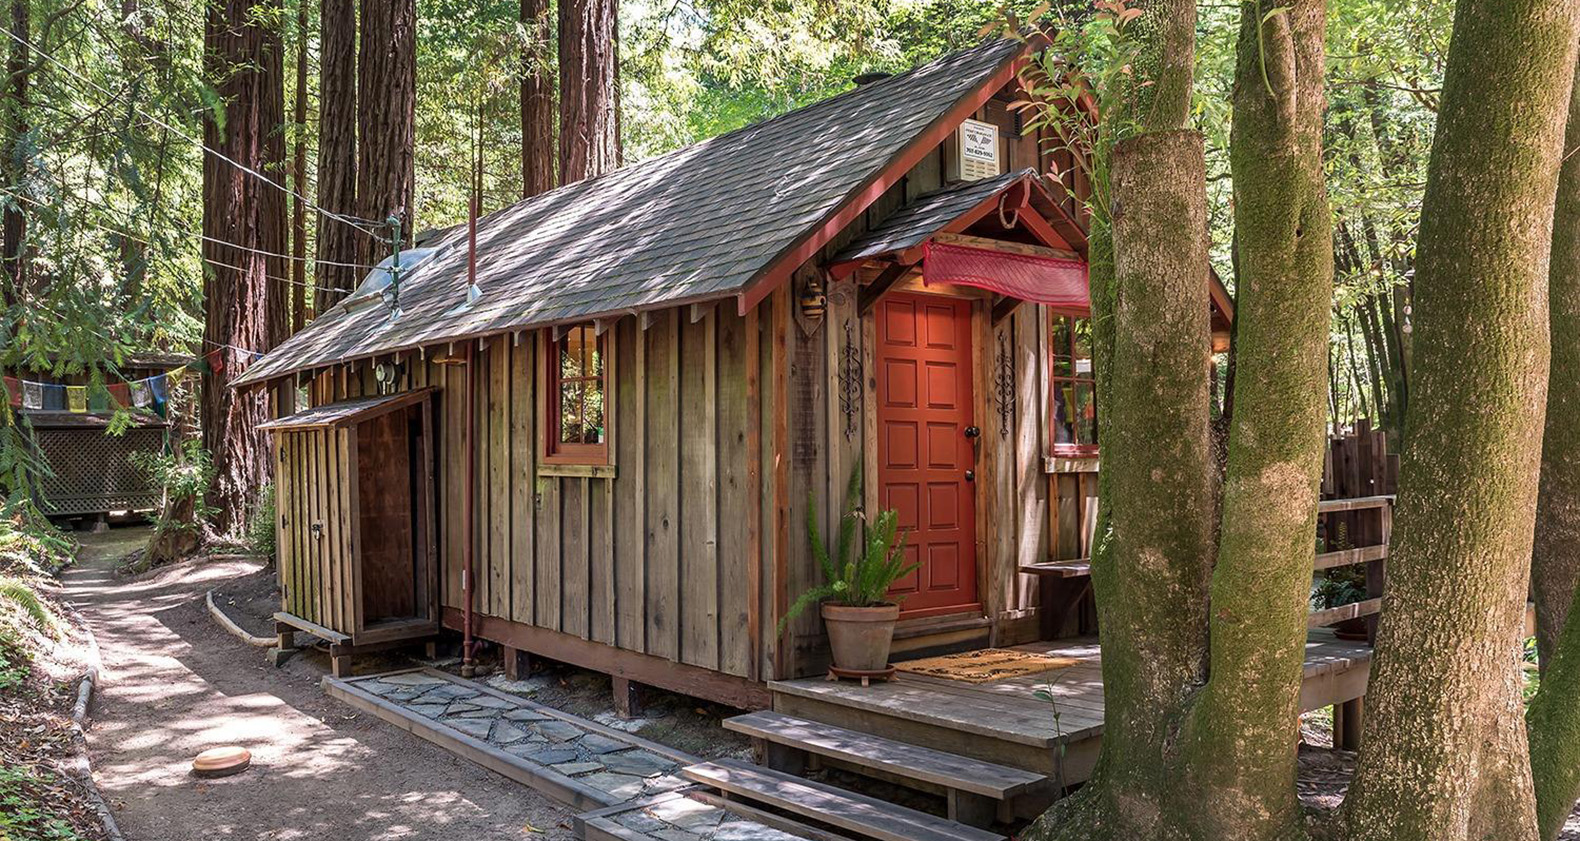 Amazing Tiny Home With Its Own Pirate Treehouse Is The Ultimate